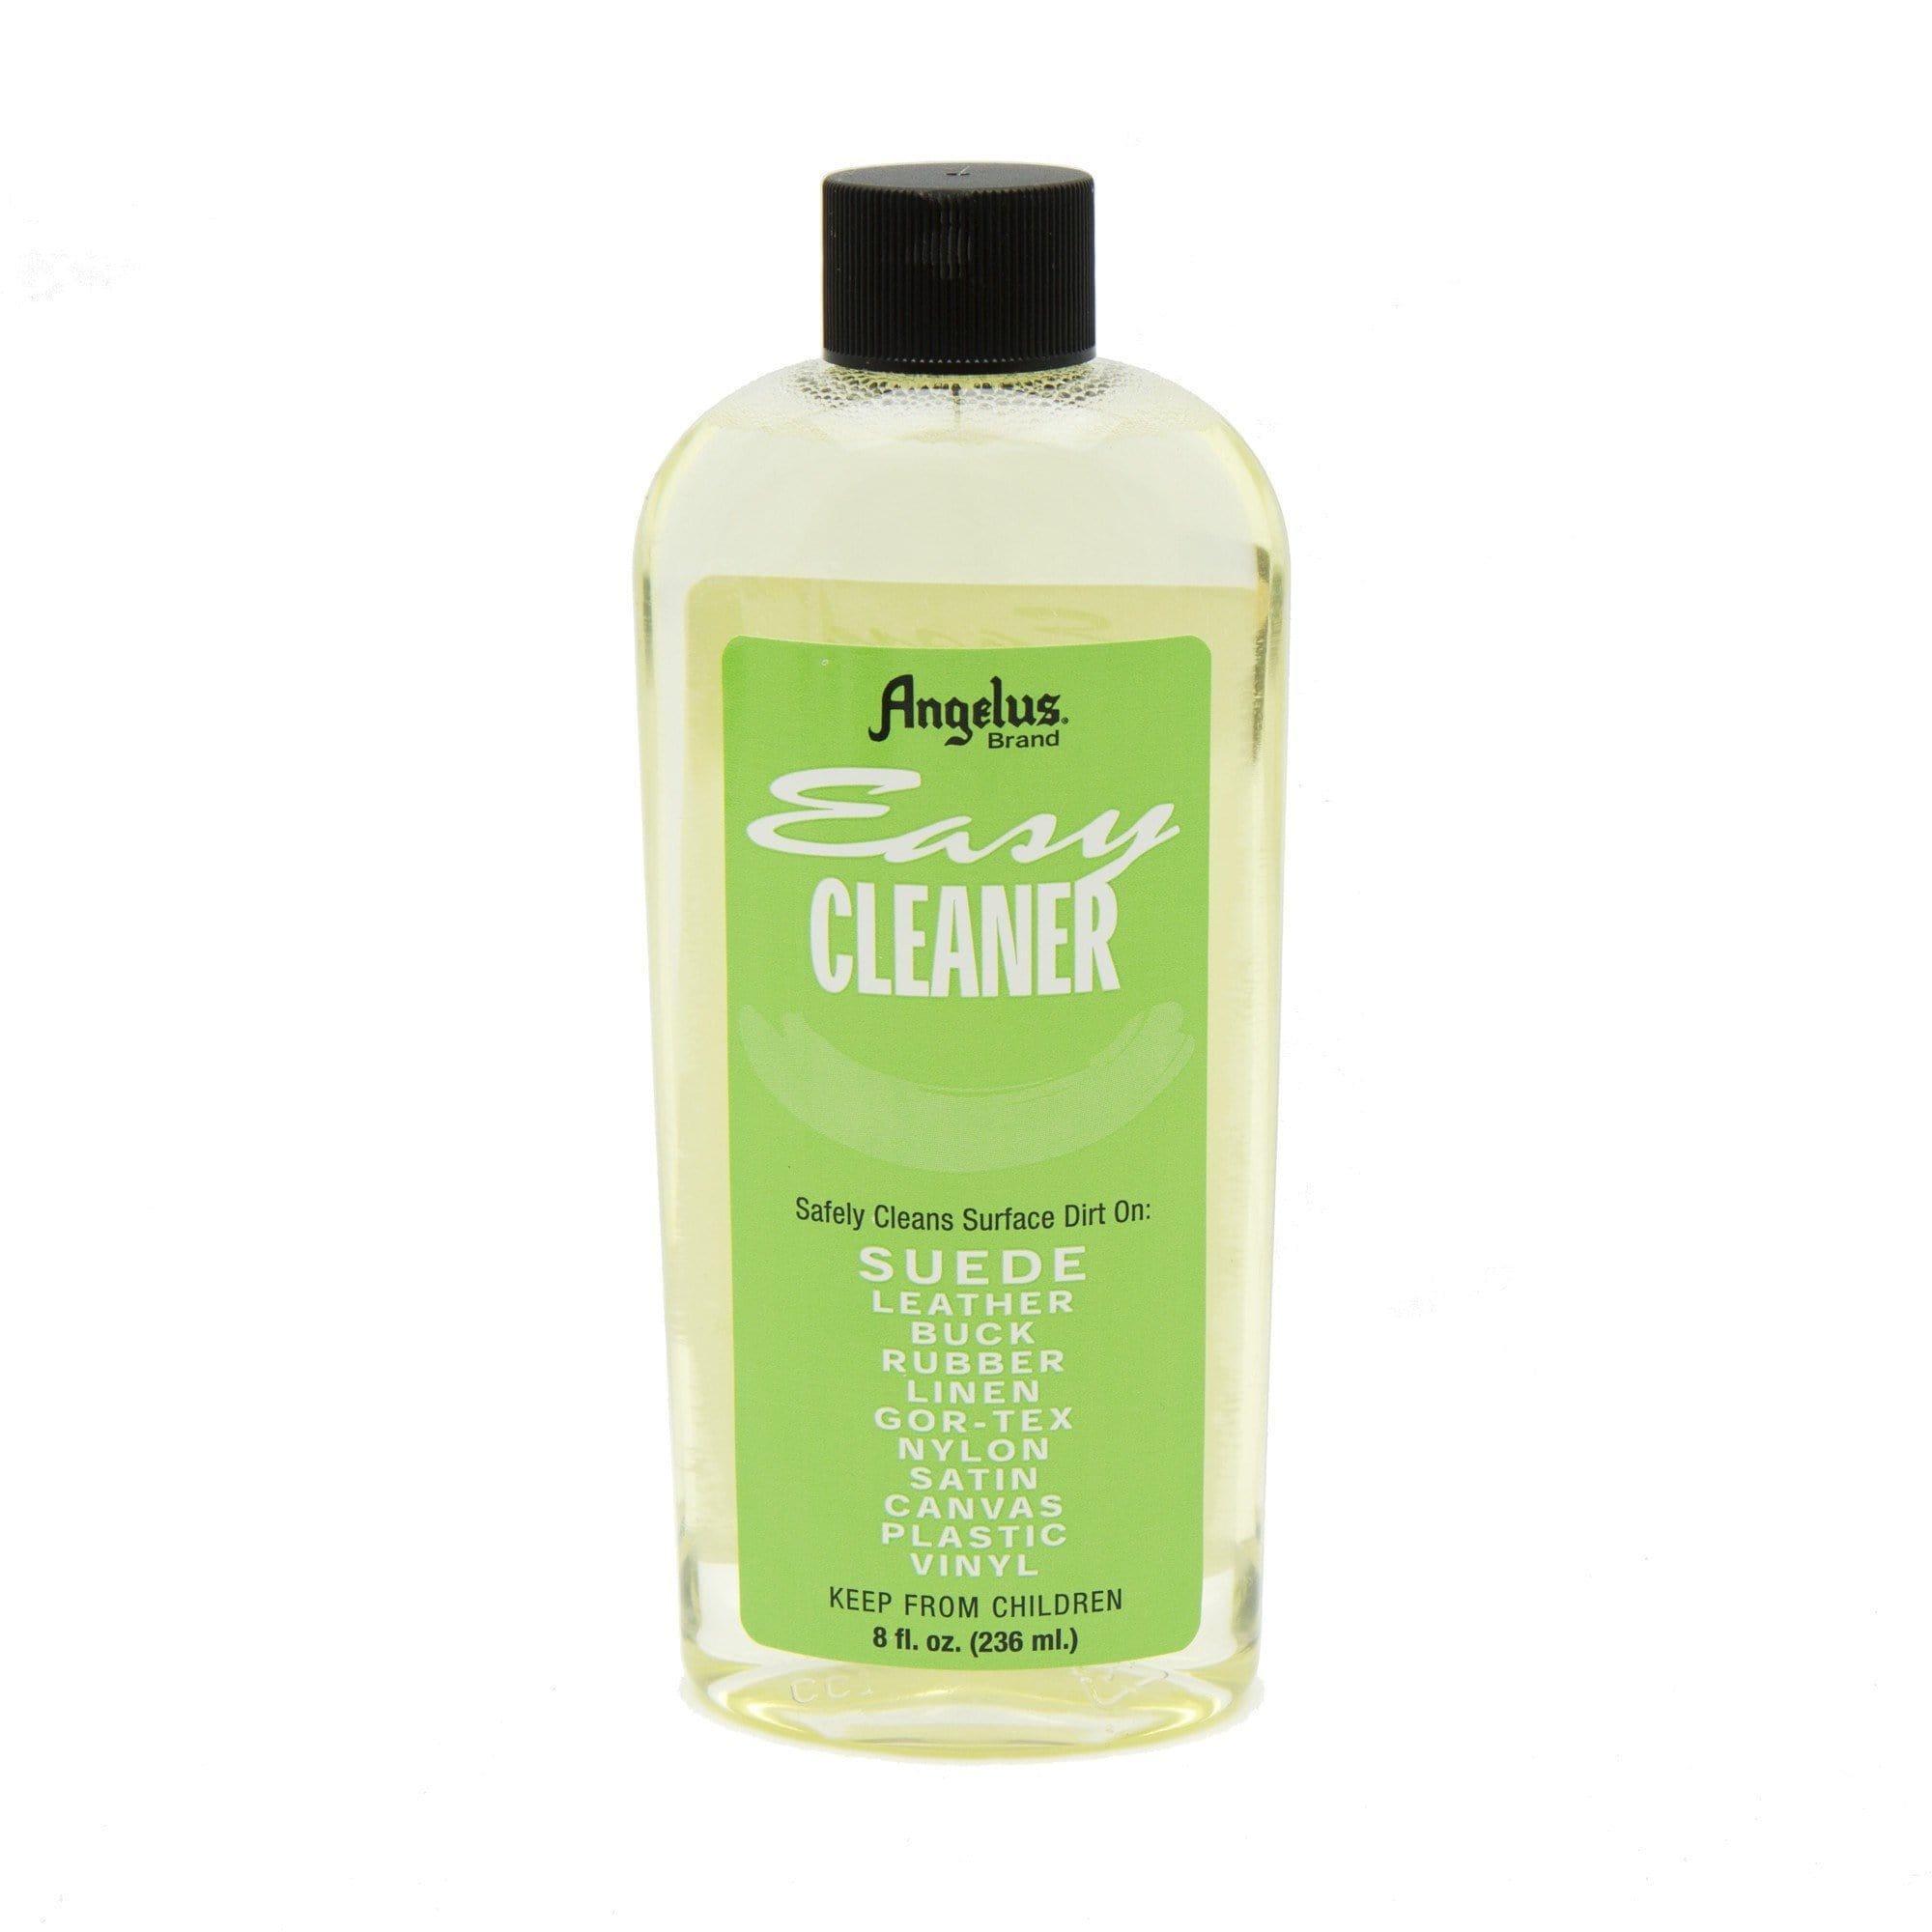 Easy Cleaner   Angelus Brand Shoe Care